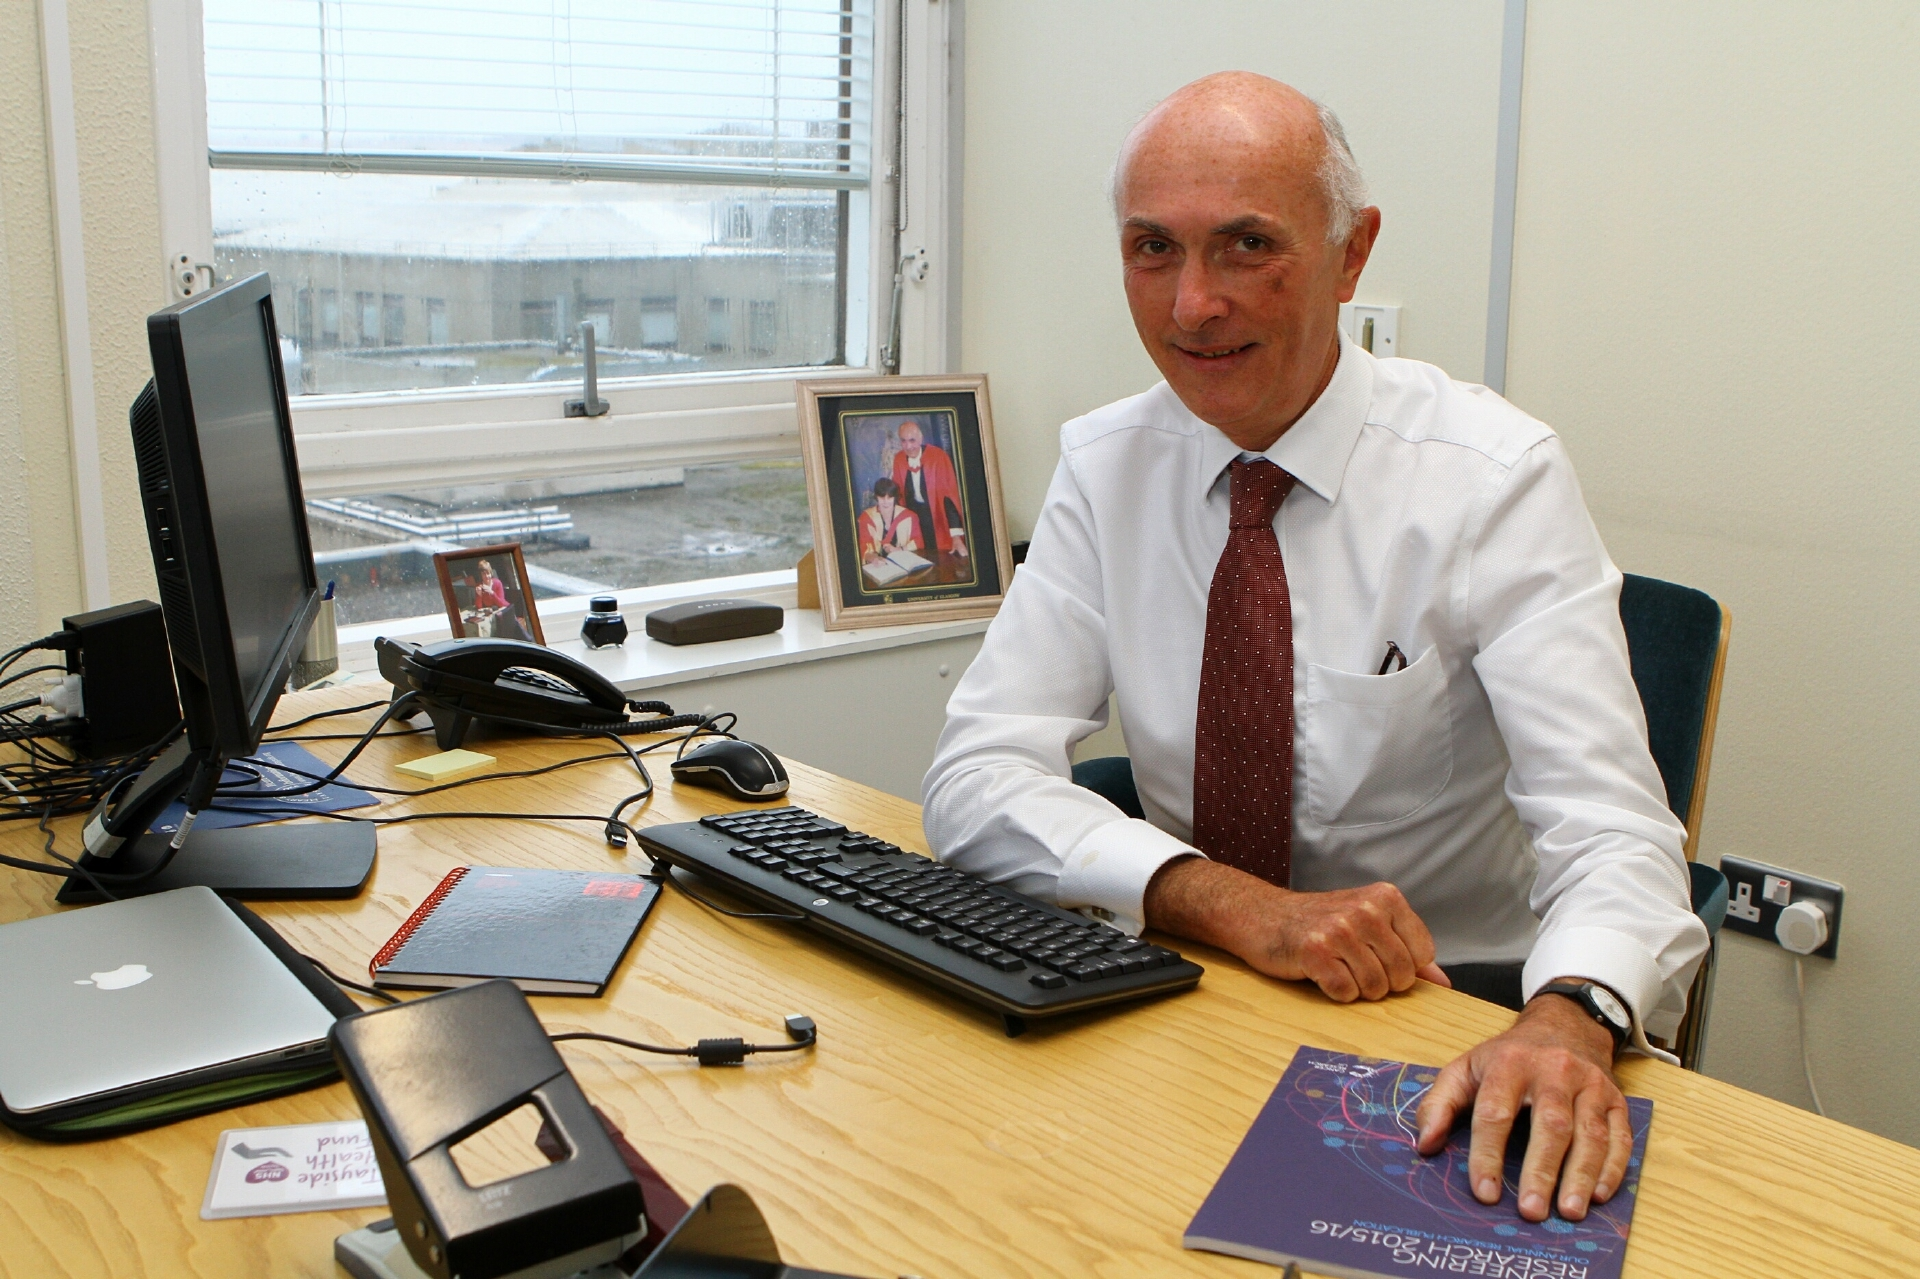 Professor John Connell, chairman of NHS Tayside